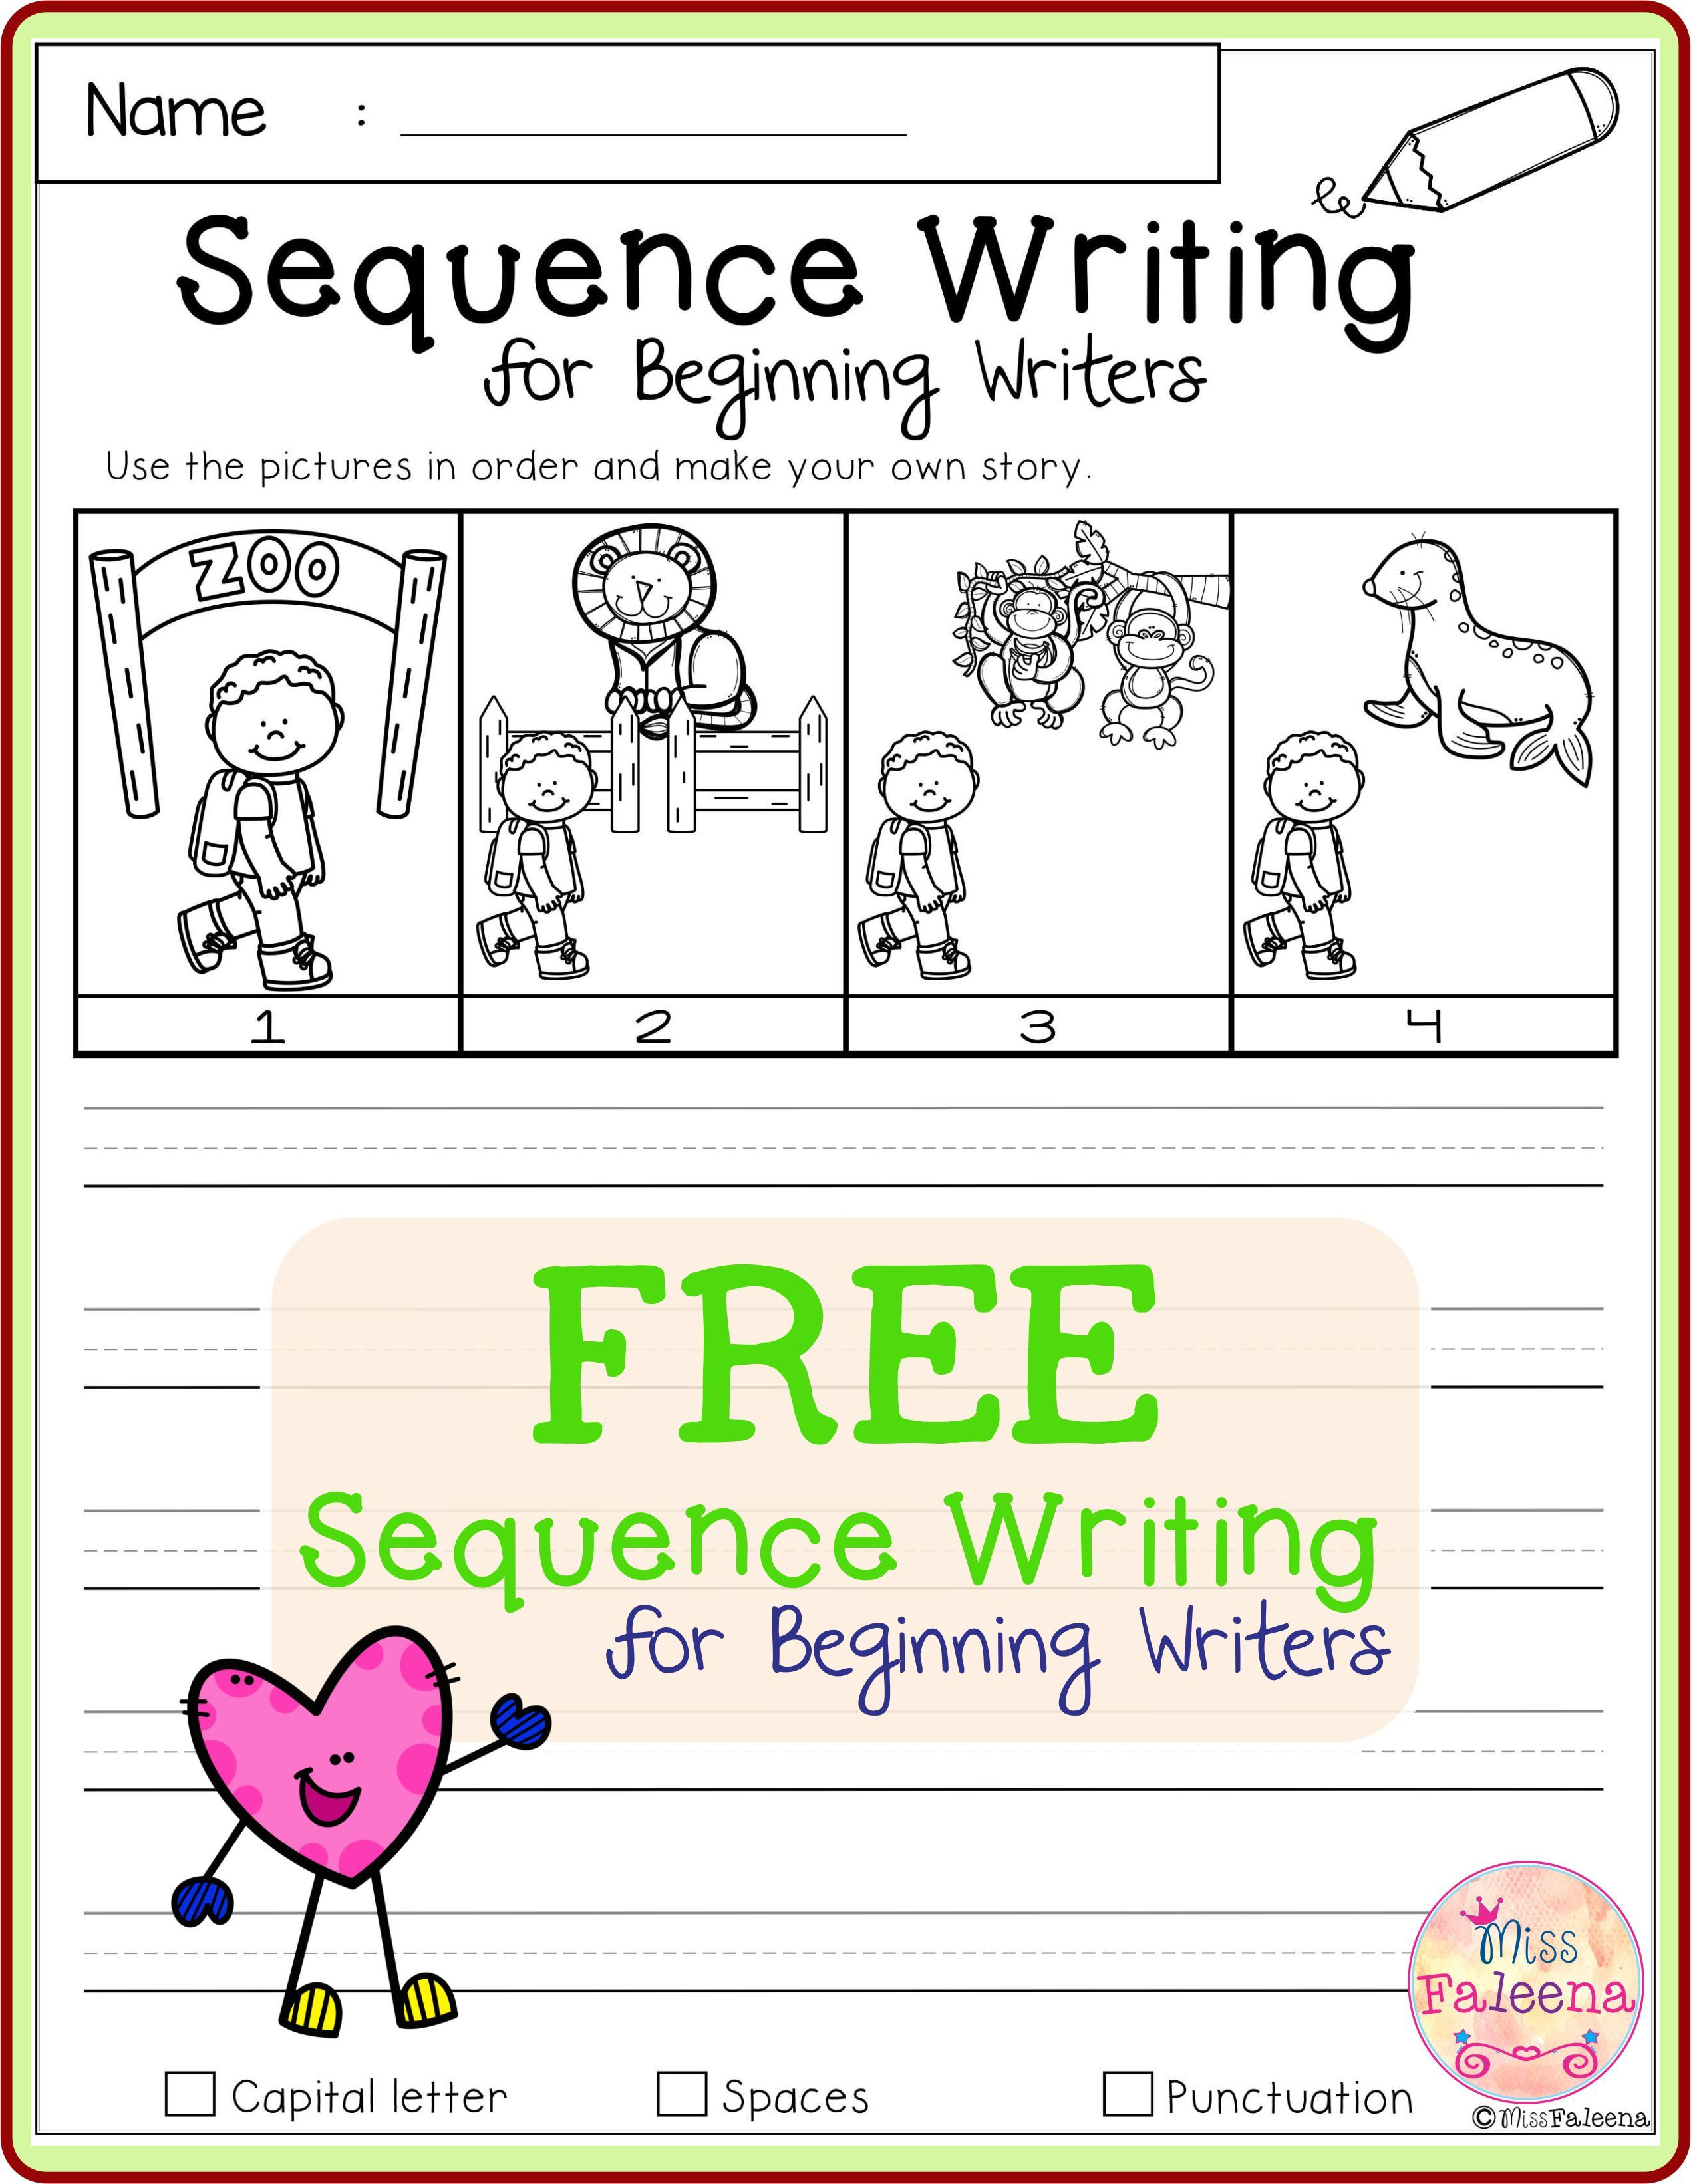 Free Sequence Writing For Beginning Writers Sequence Writing Writing Lessons Writing Skills [ 3284 x 2542 Pixel ]